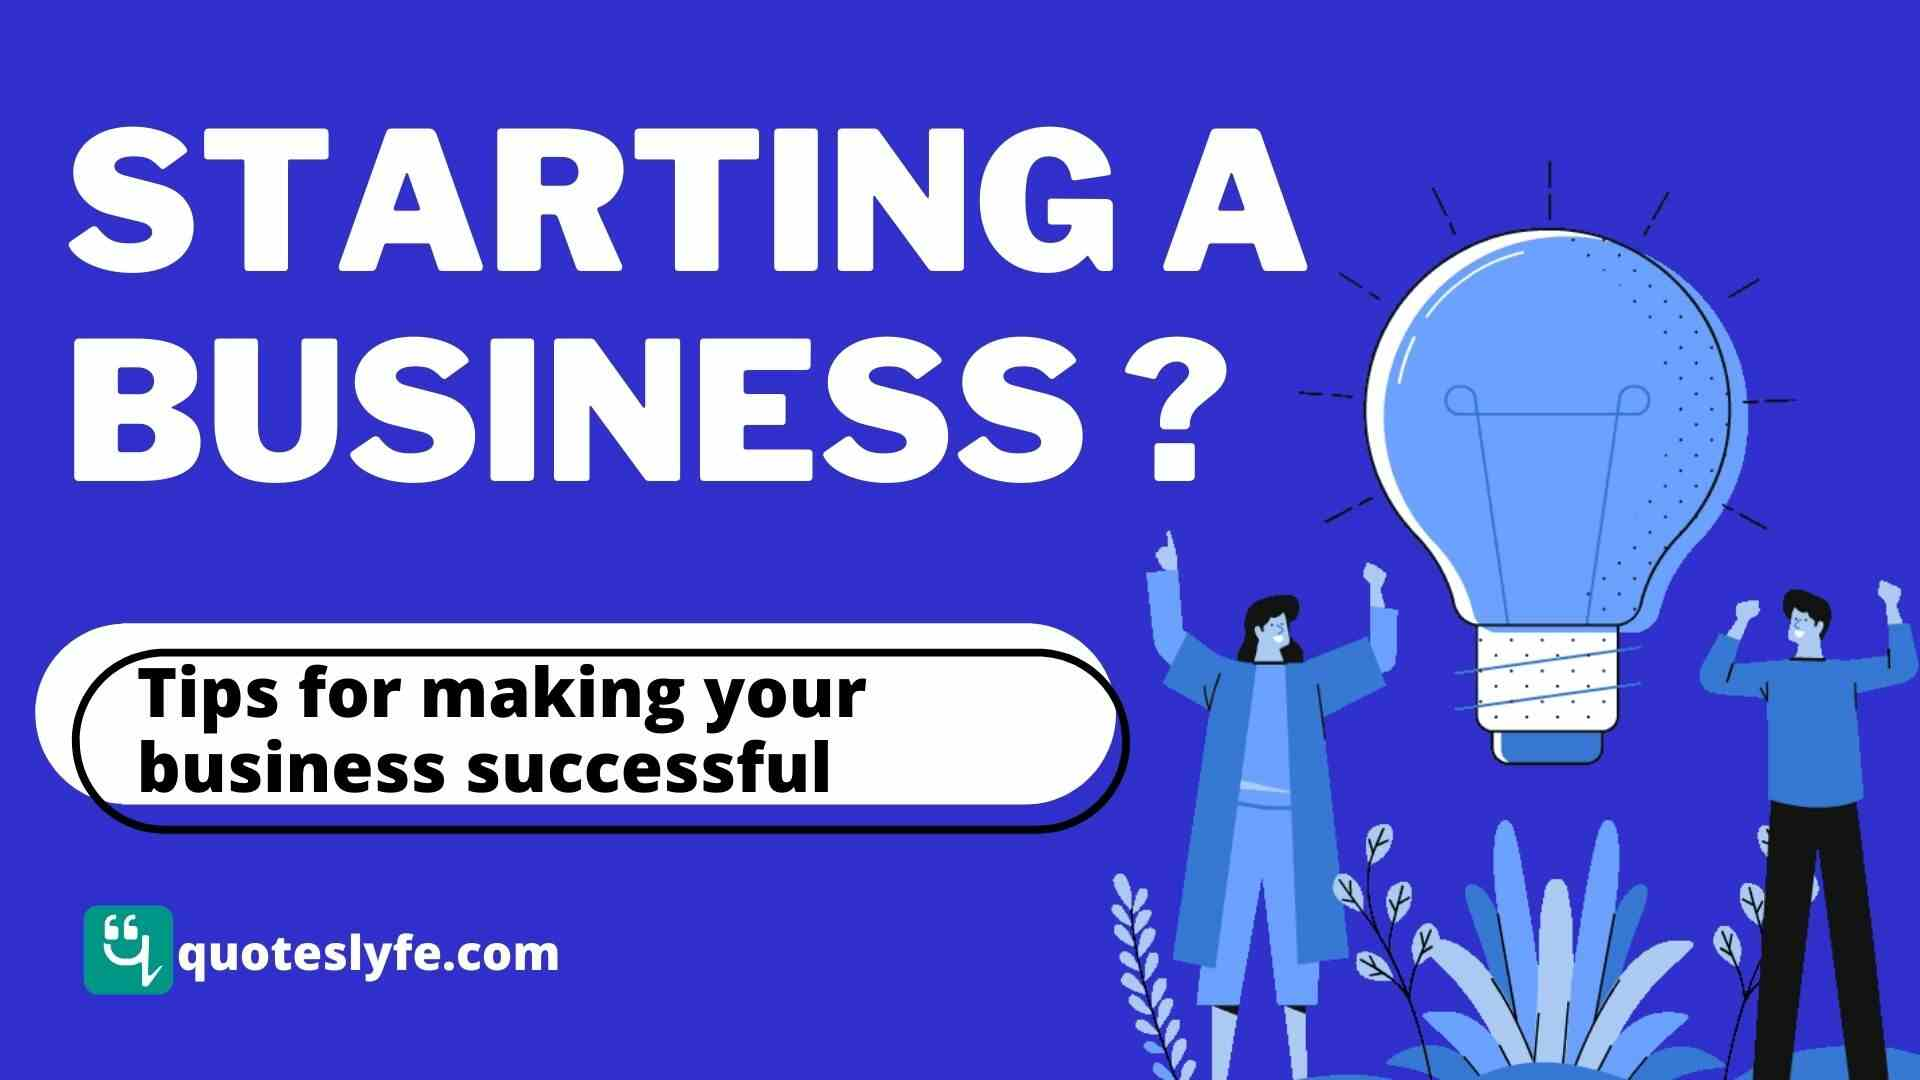 Tips for Making Your Business Successful